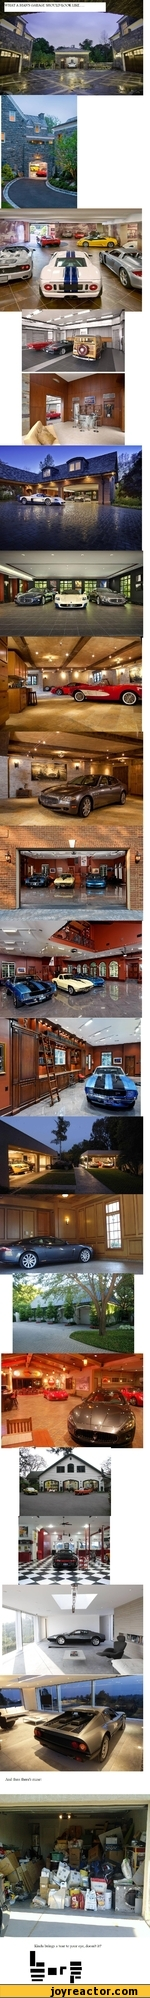 WHAT A MAN'S GARAGE SHOULD LOOK LIKE And then there's mine! ..... Kinda brings a tear to your eye, doesn't it?